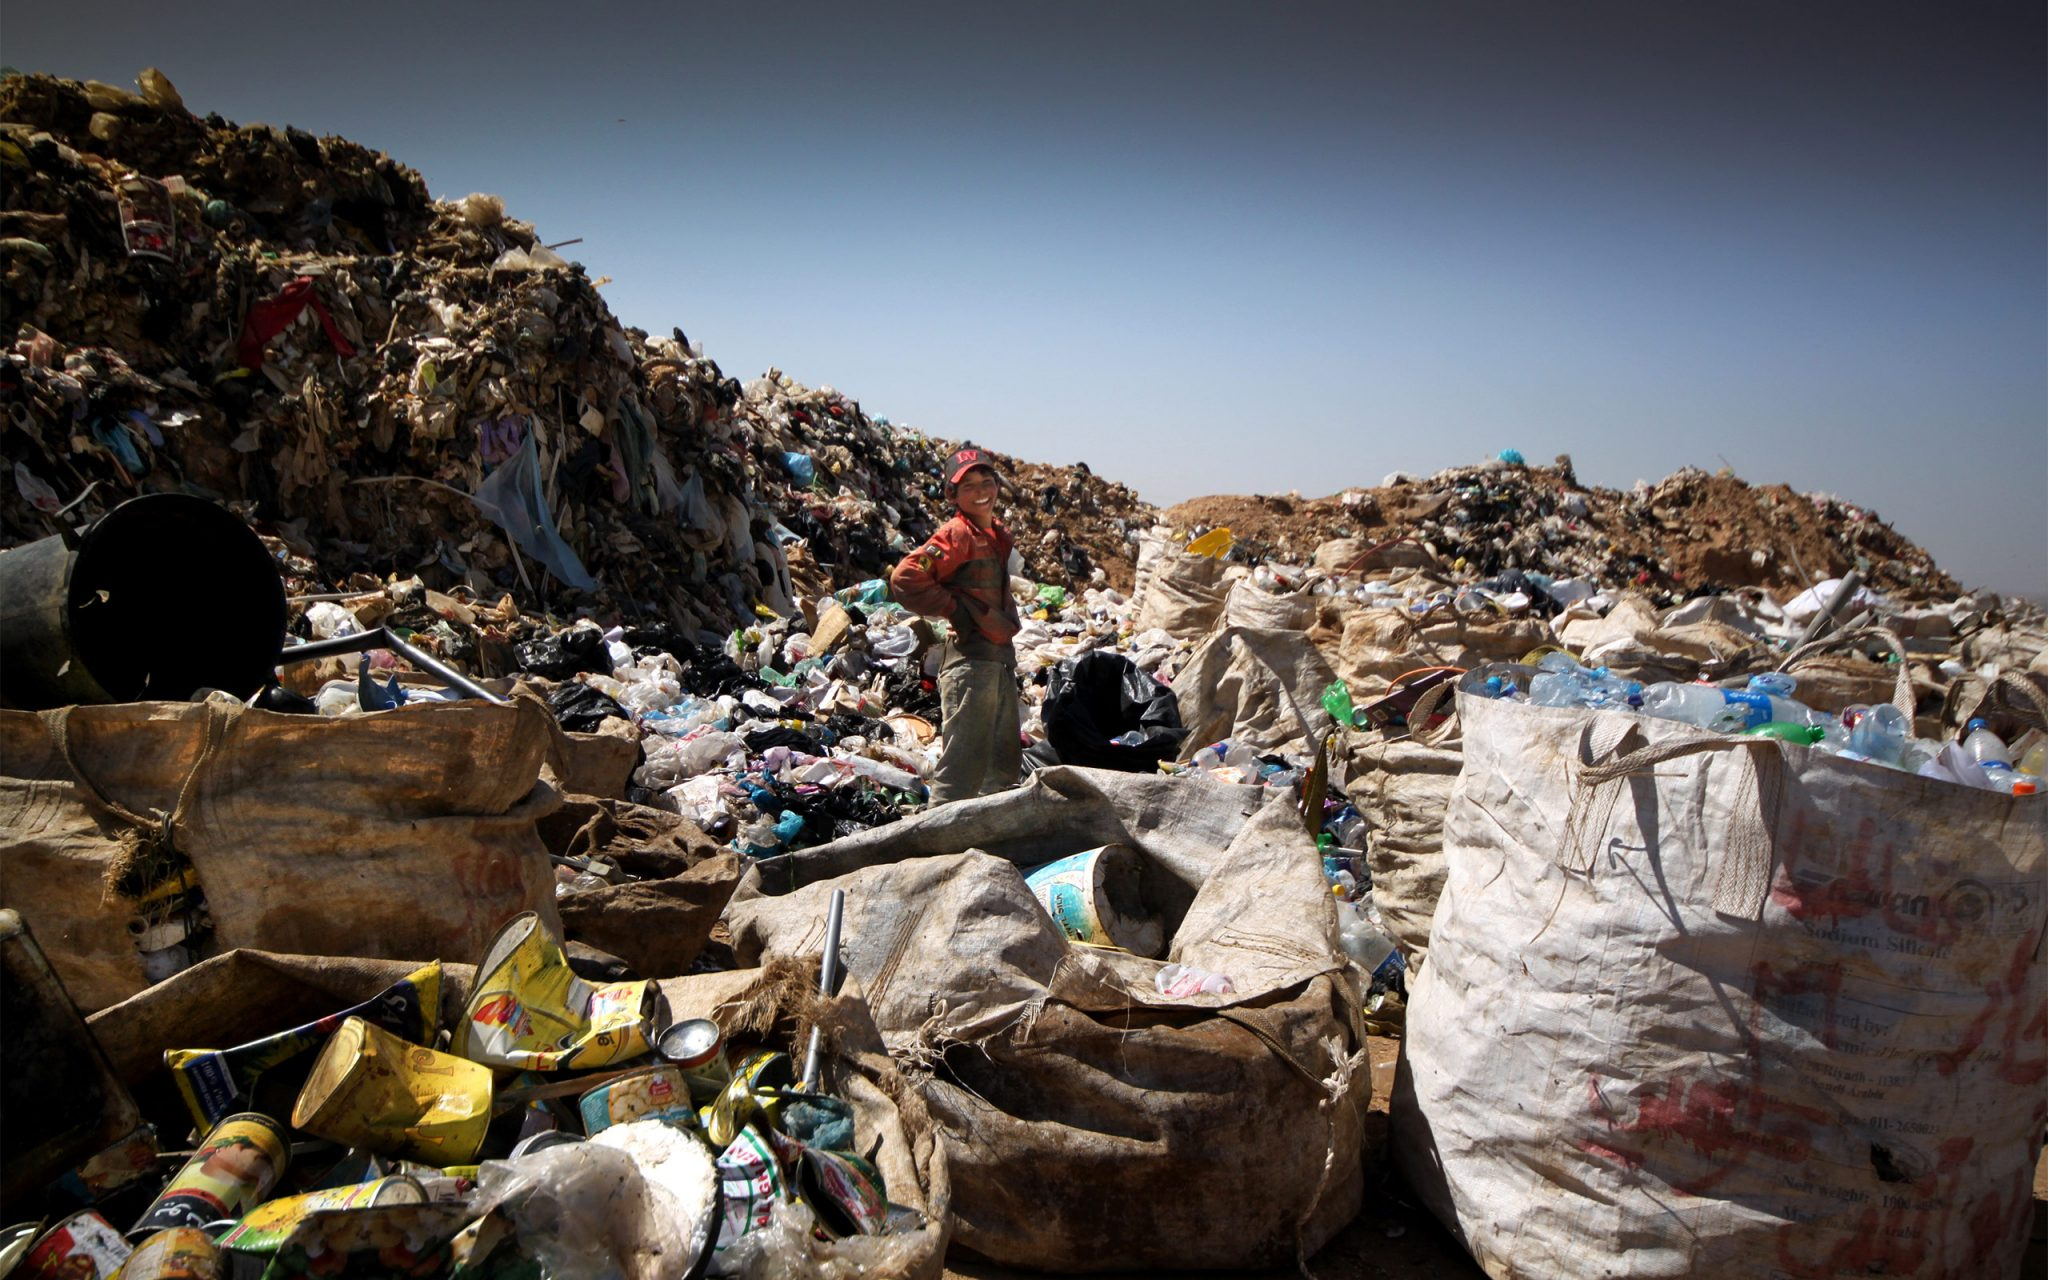 Young Syrian refugee boy working at Jordan's Al Huseyniyat landfill site, near the Syrian border.